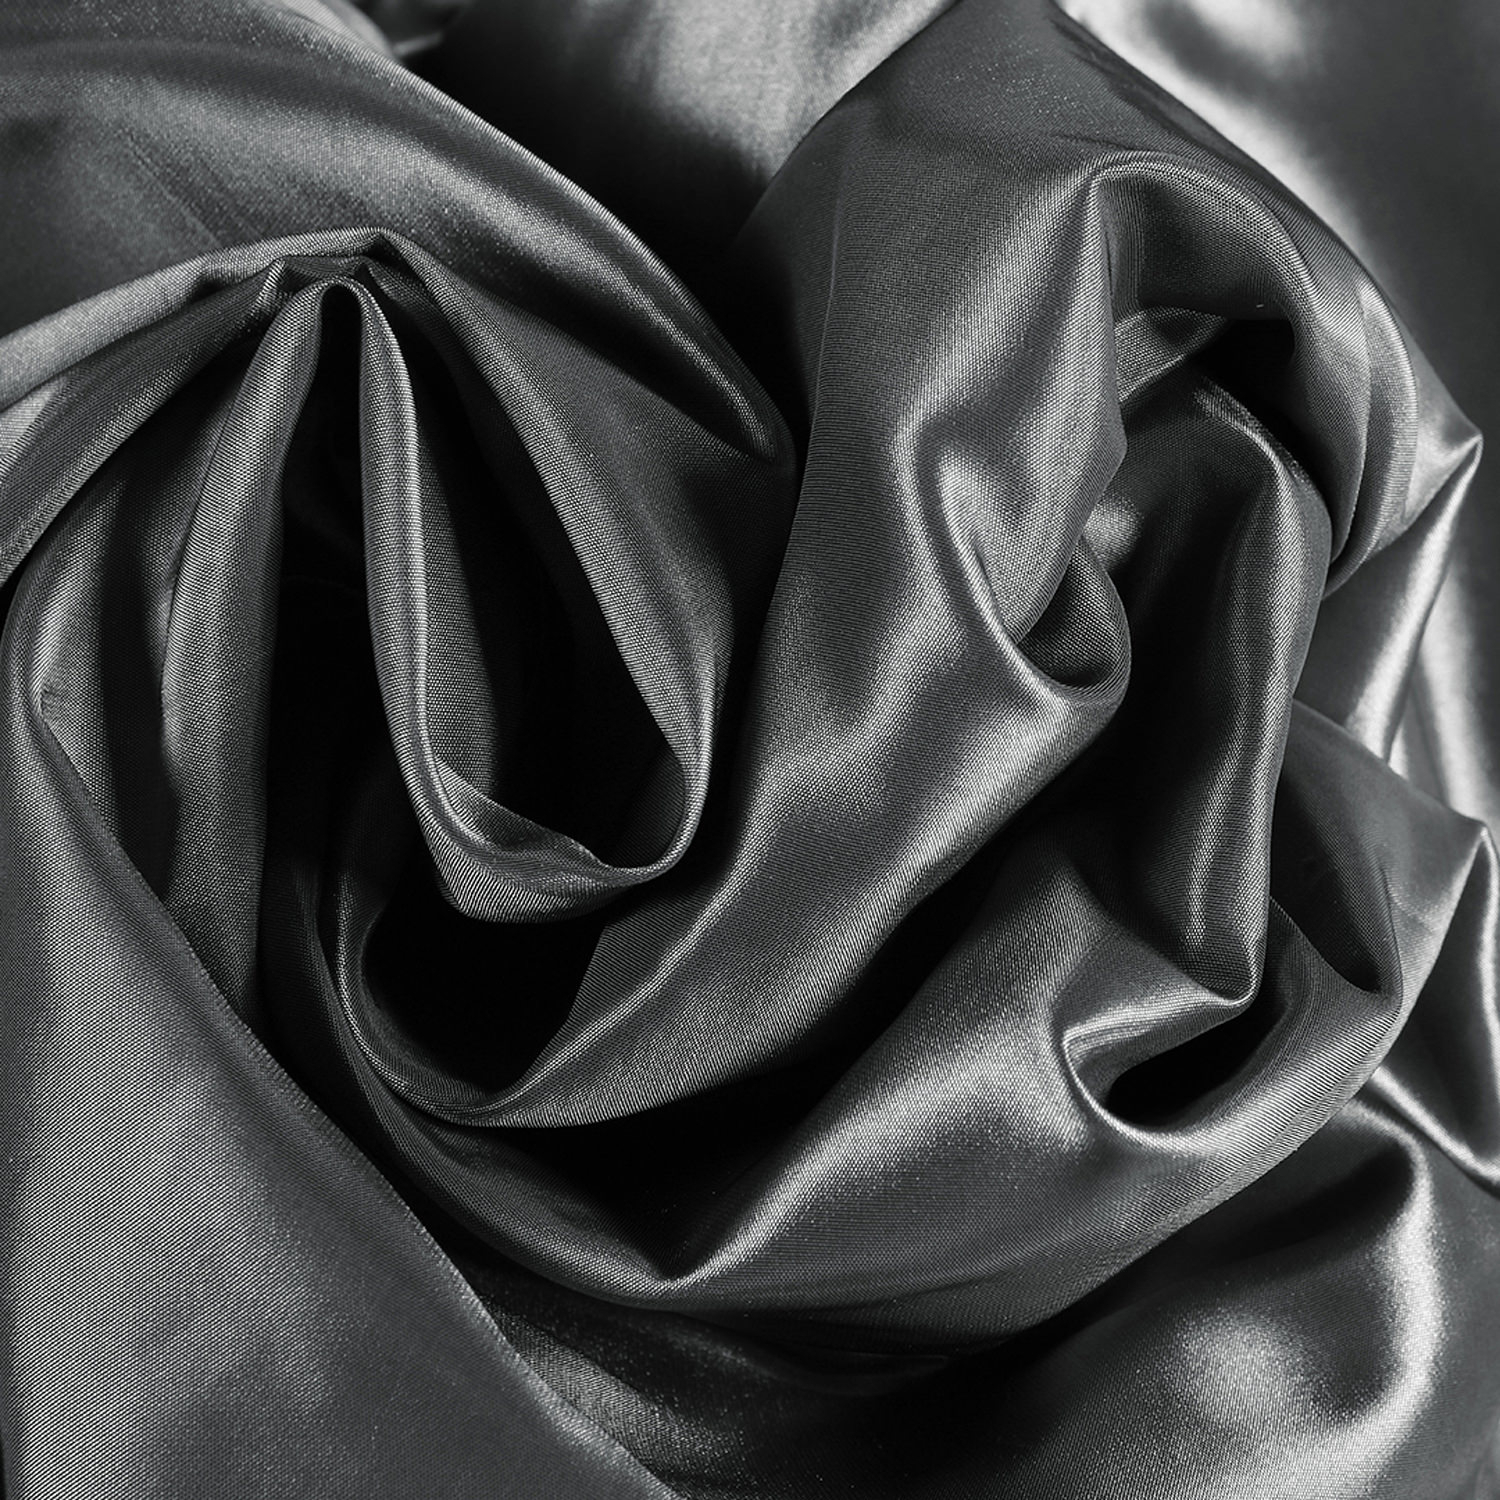 Graphite Faux Silk Taffeta Fabric – Waterford Stripe Curtain Pertaining To Solid Faux Silk Taffeta Graphite Single Curtain Panels (View 16 of 30)